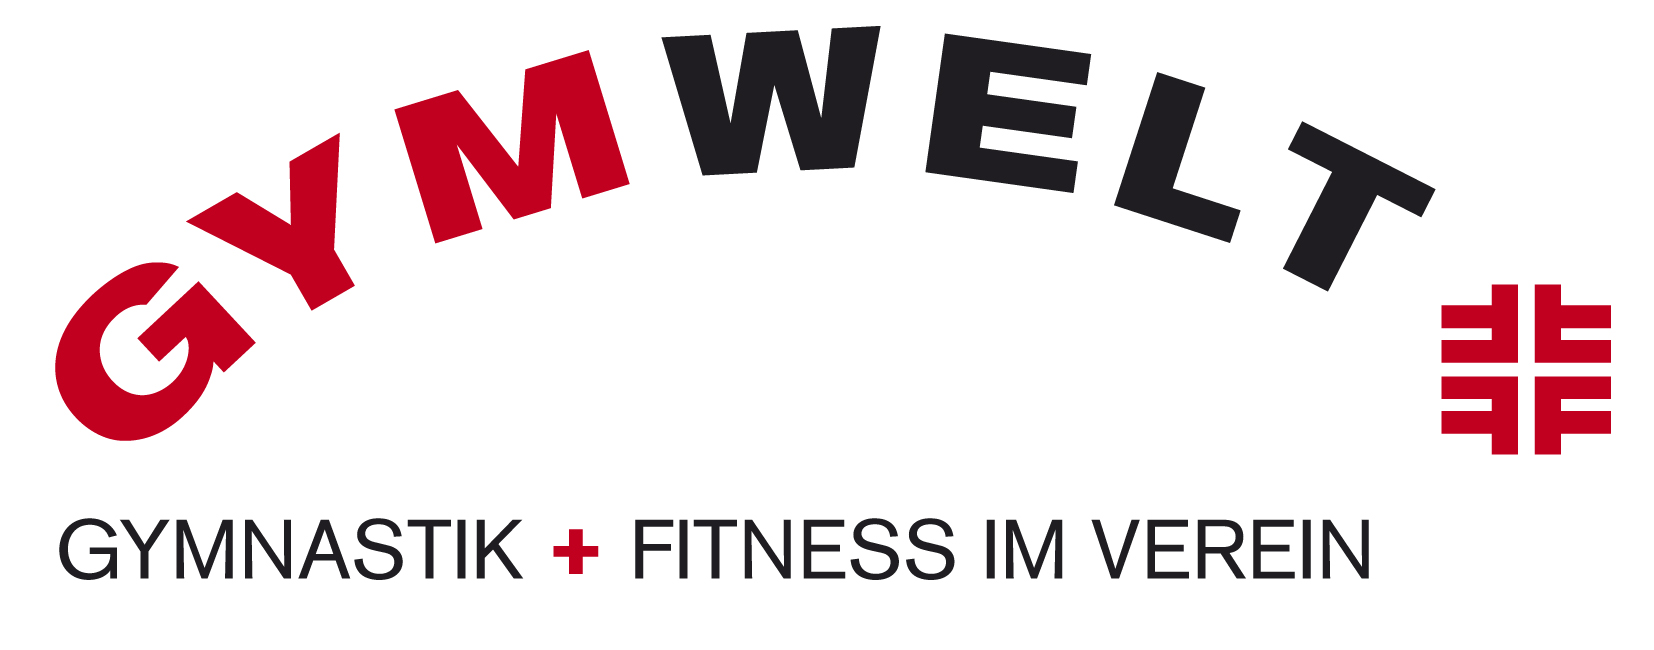 GYMWELT_GYM_FIT_01